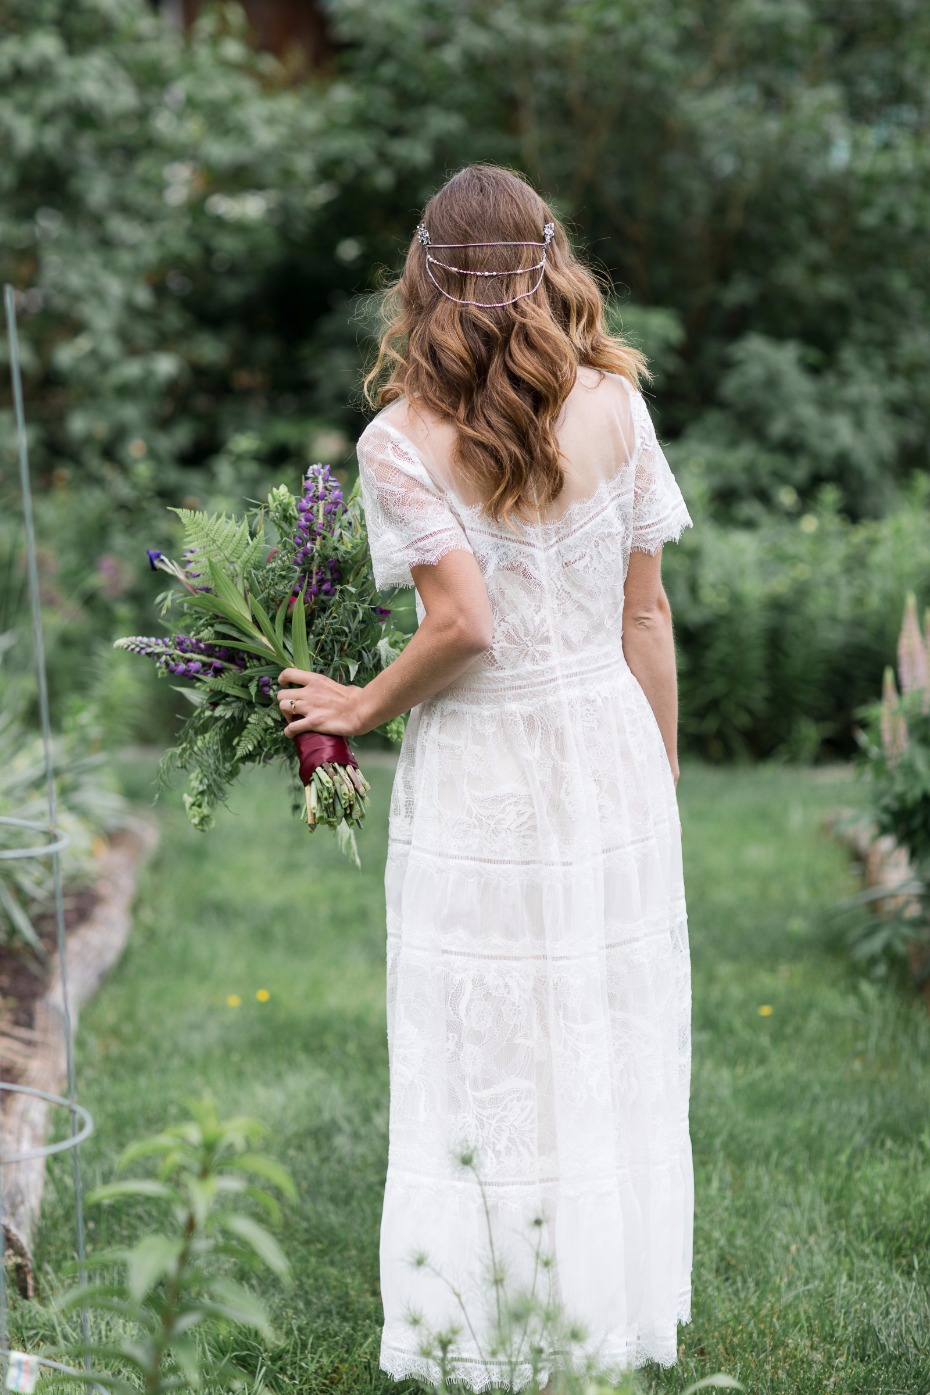 boho chic bridal style with hair chains and foraged wedding flowers